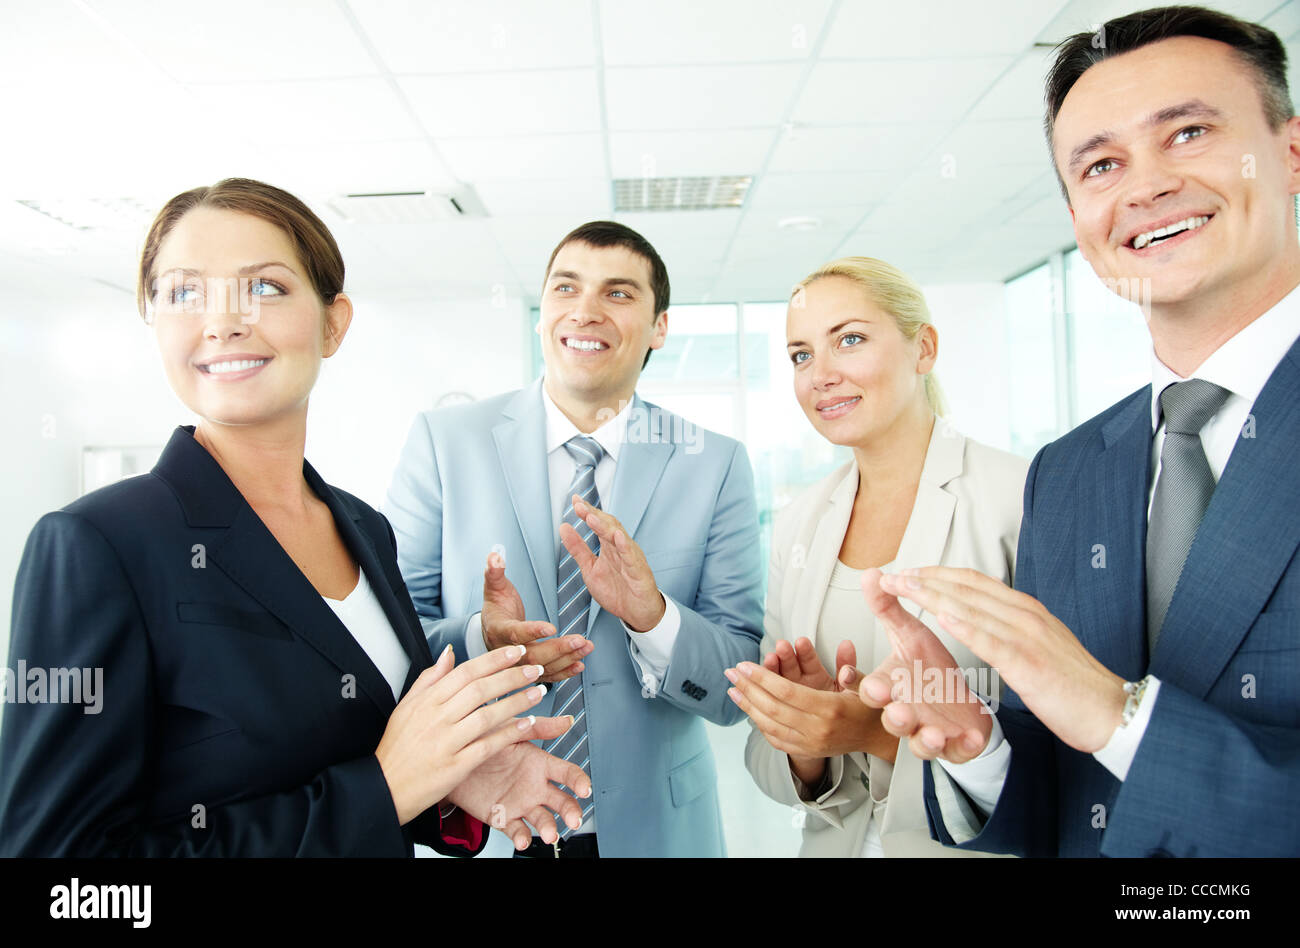 Photo of business partners applauding while looking at spokesman - Stock Image